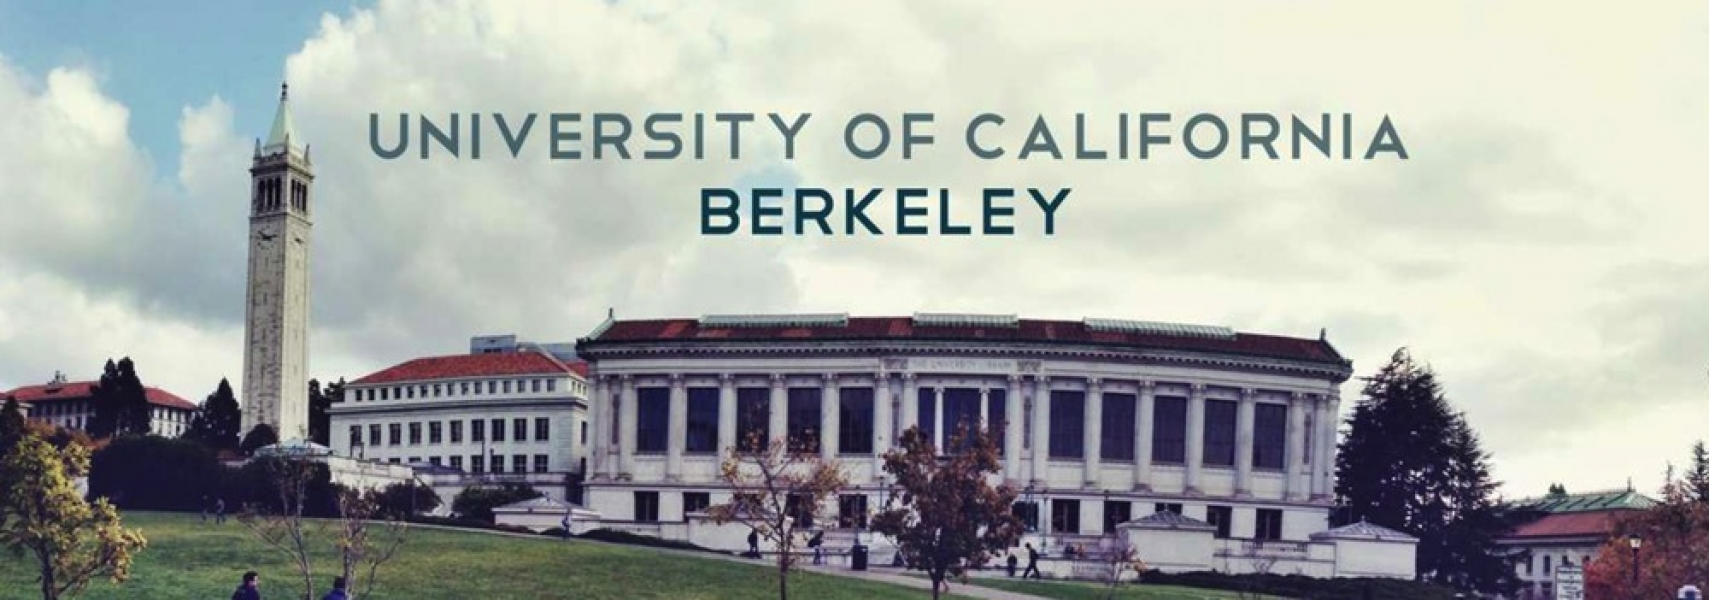 essays for uc berkeley These university of california - berkeley college application essays were written by students accepted at university of california - berkeley.